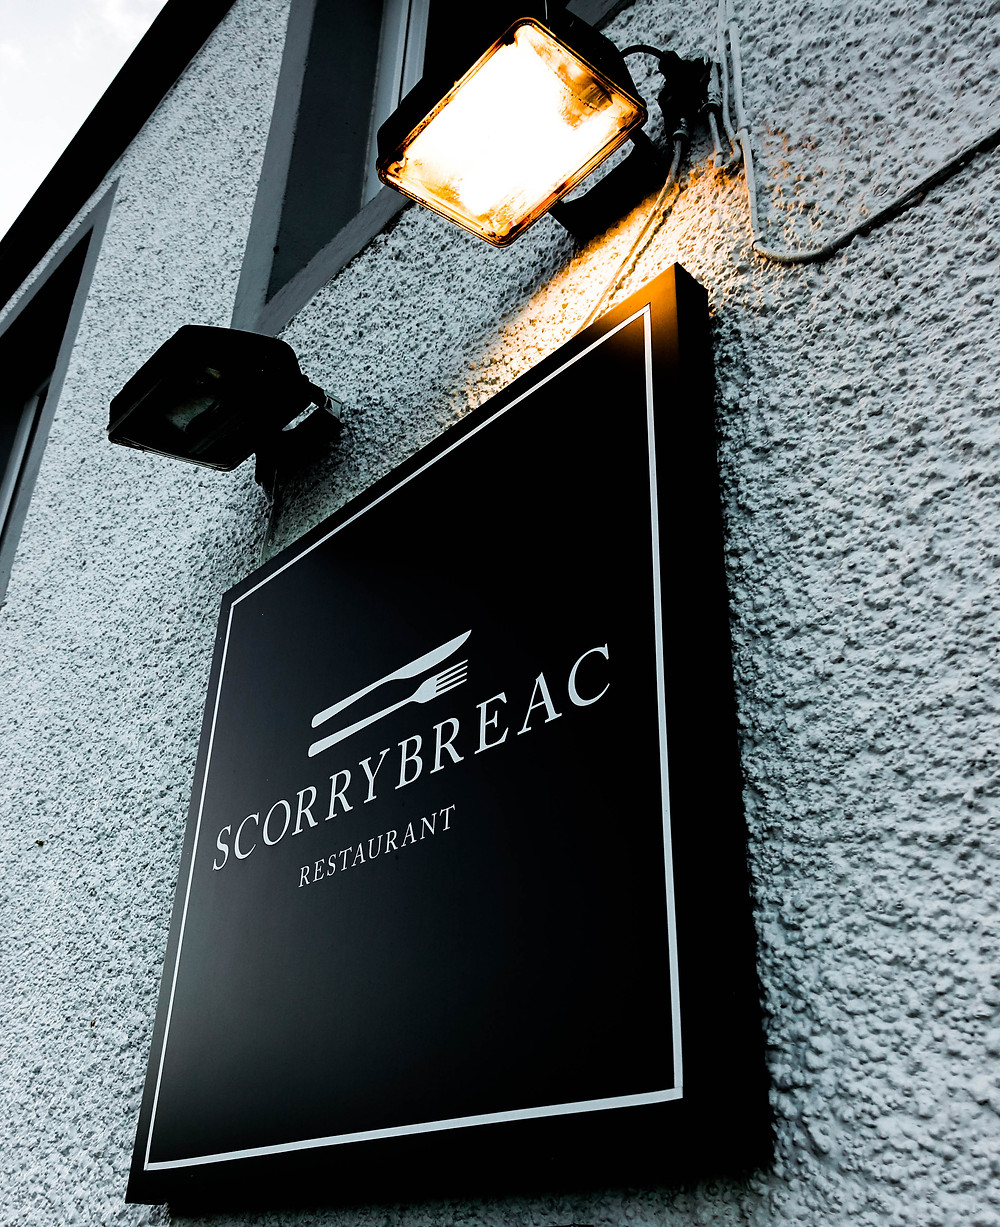 Door sign of Scorrybreac Restaurant